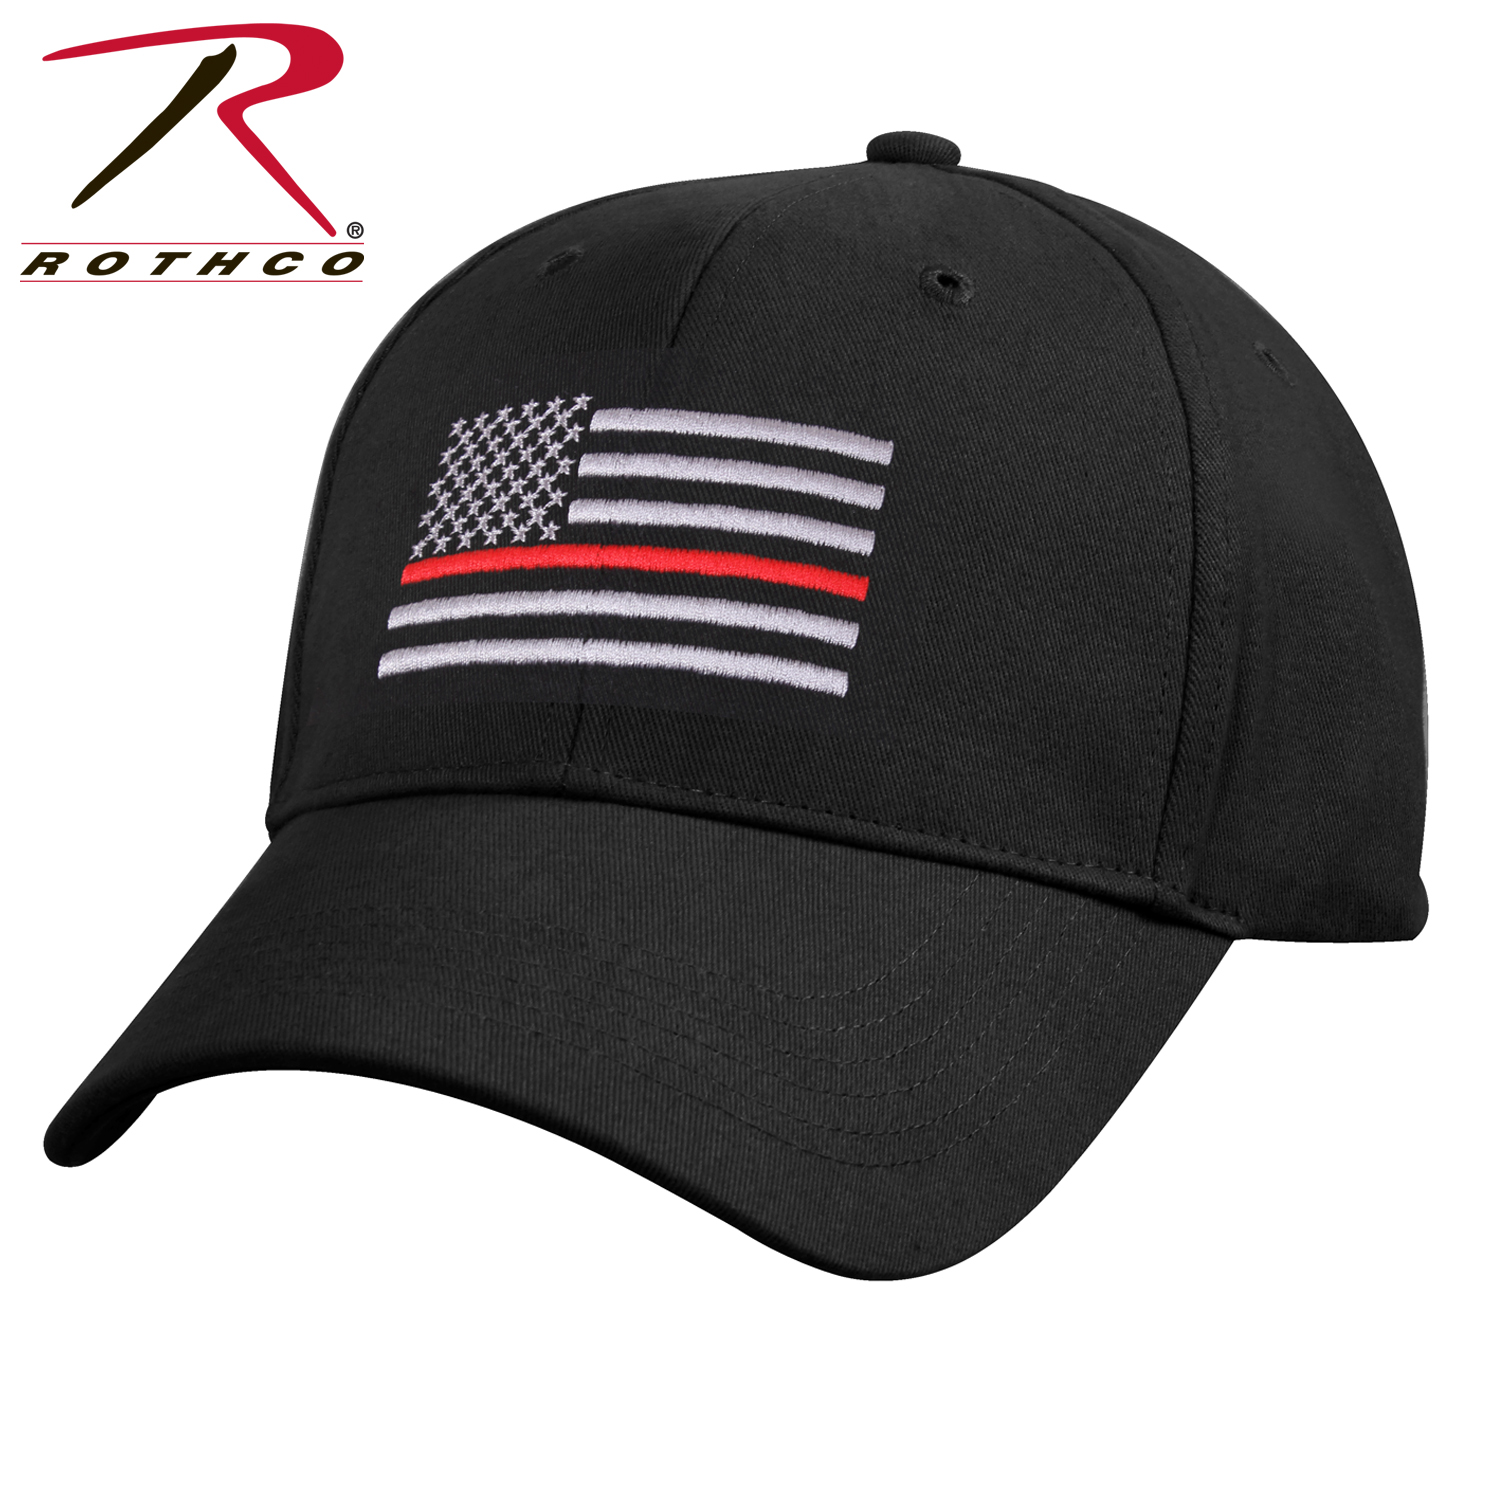 fef3c451ac8 rothco thin red line low profile cap